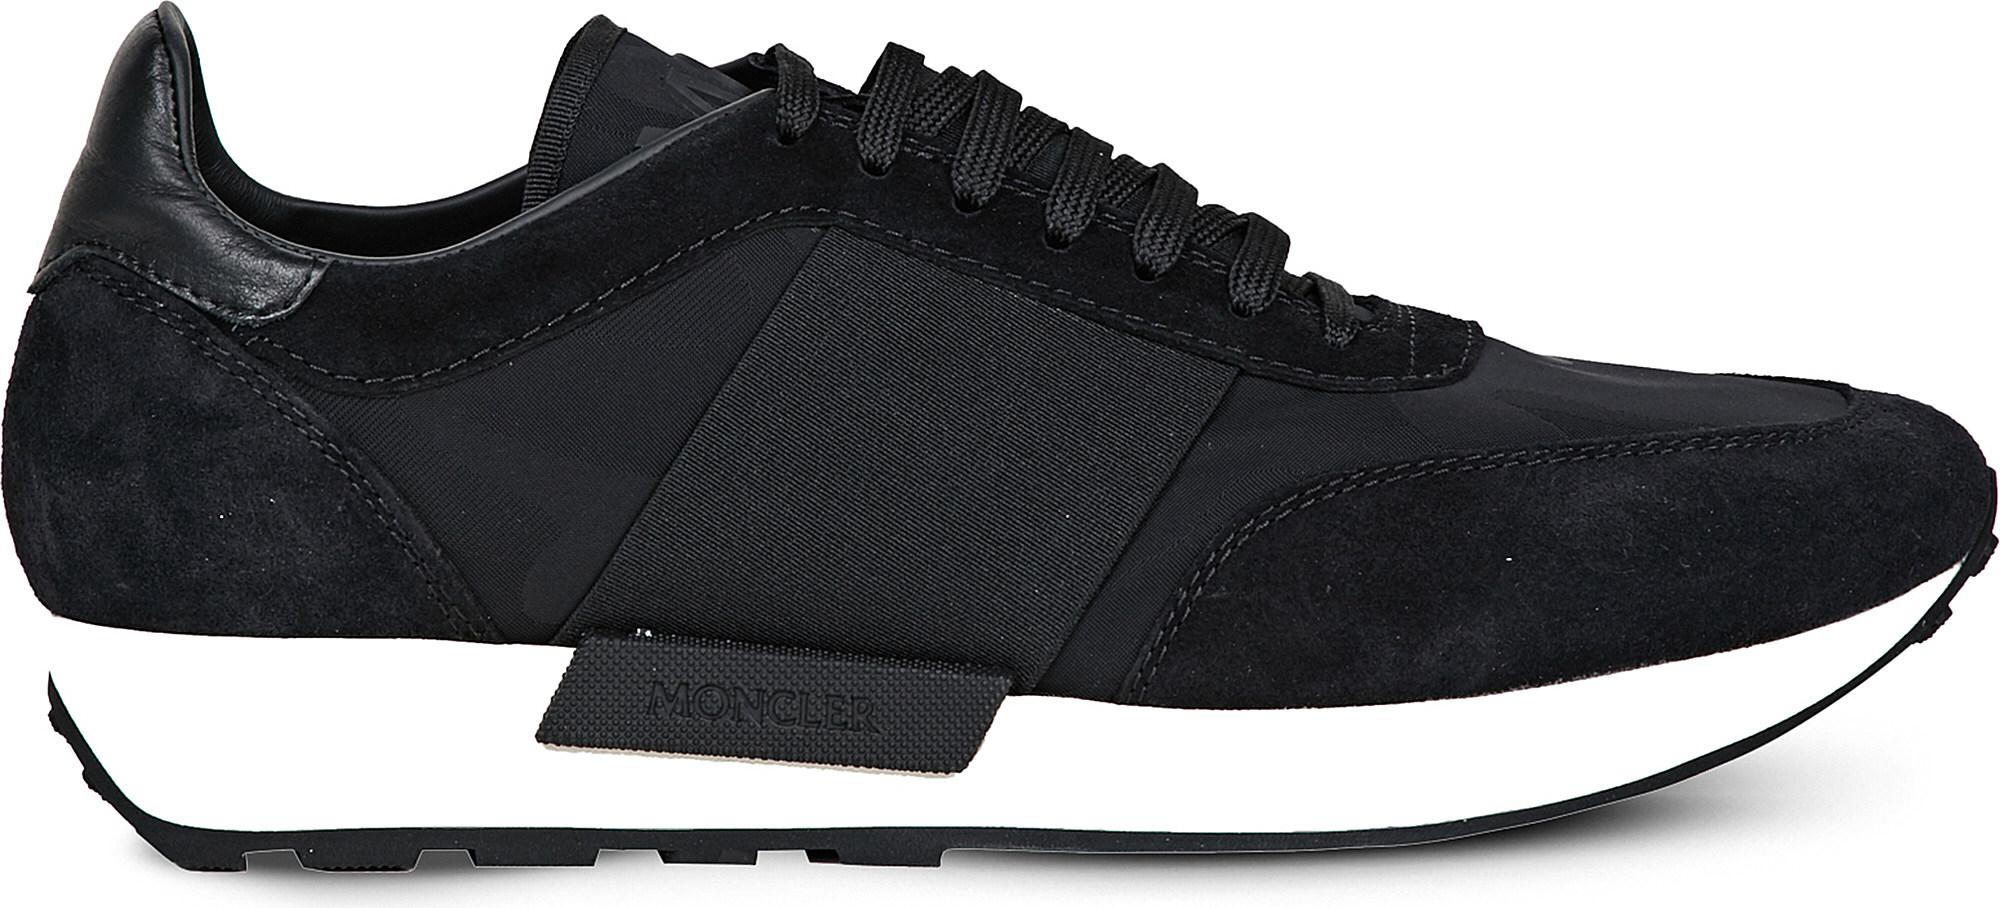 Moncler. Men's Black Horace Suede And Textile Trainers